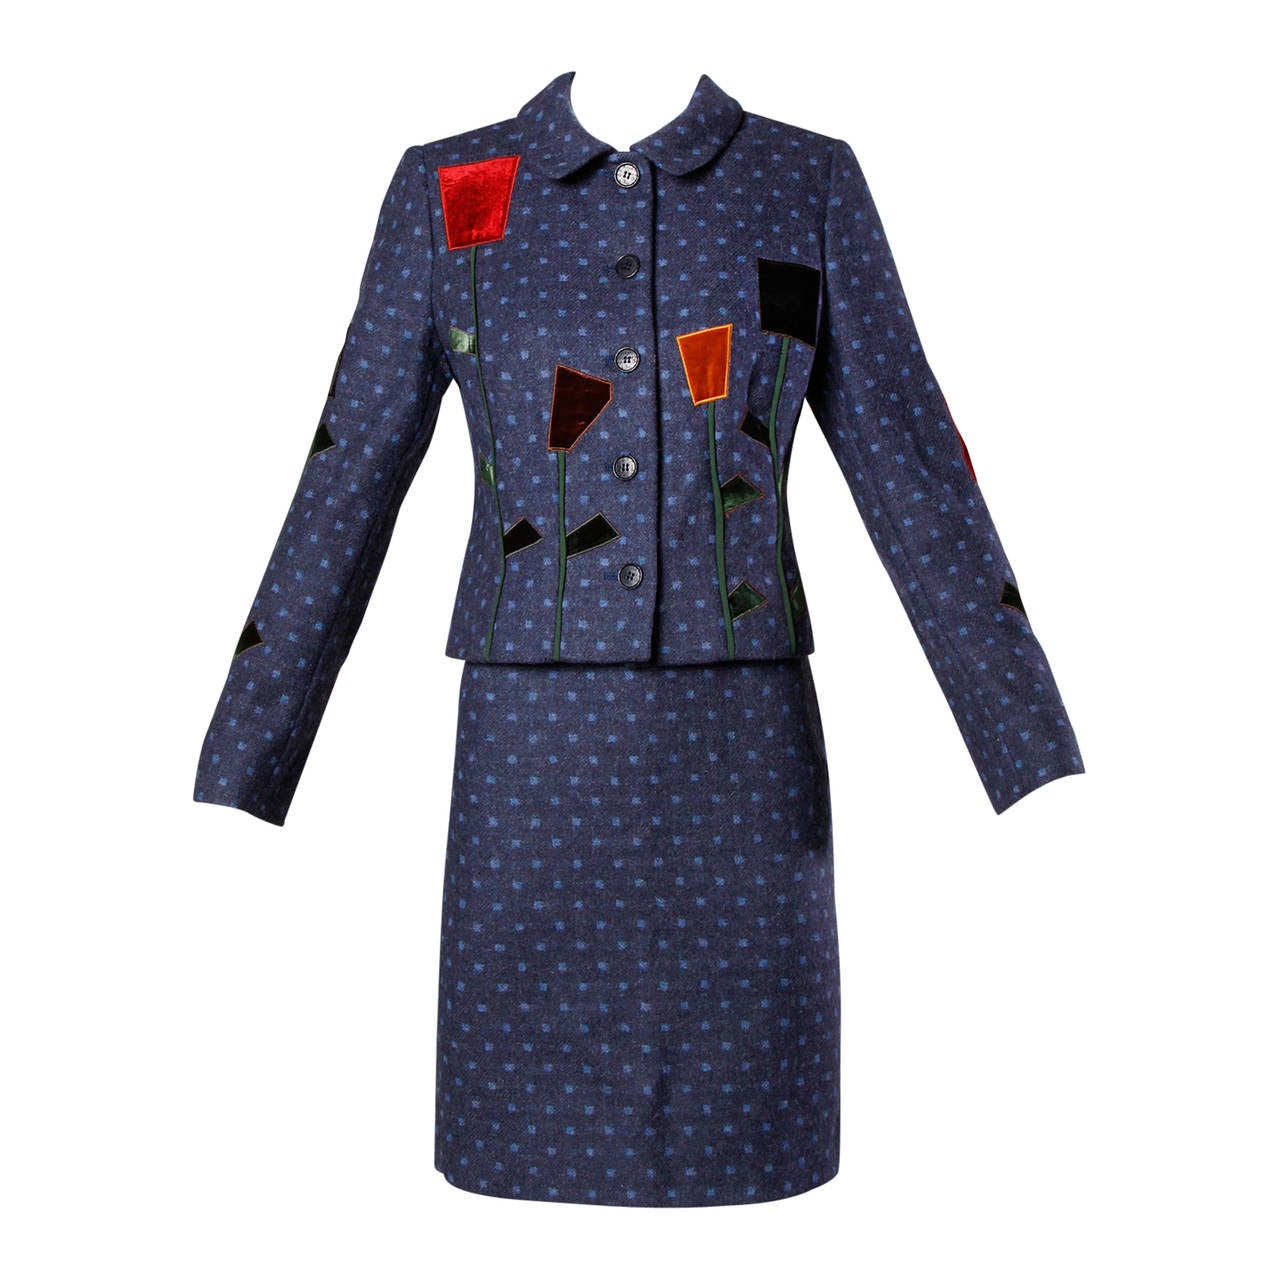 Moschino Vintage 90s Polka Dot Patchwork Skirt + Jacket Suit Ensemble